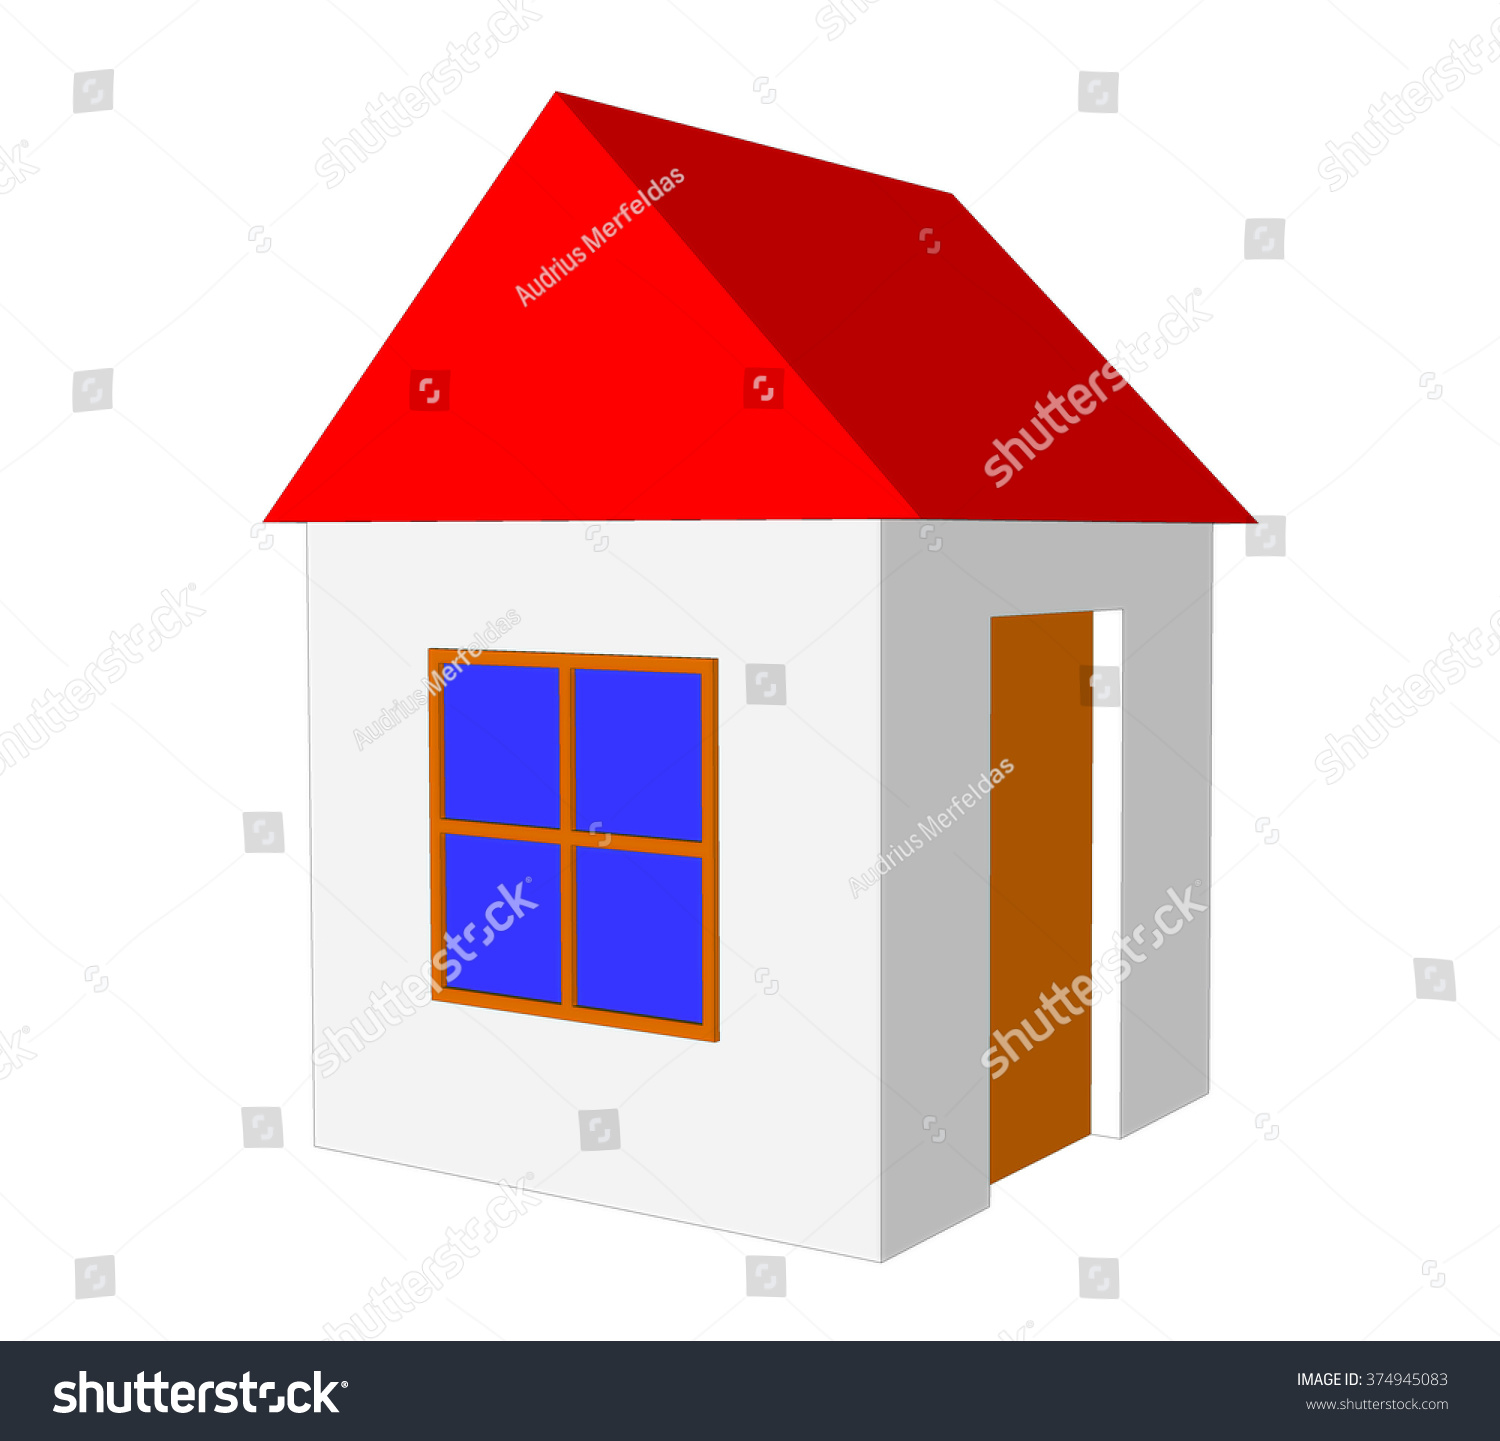 Simple house model images